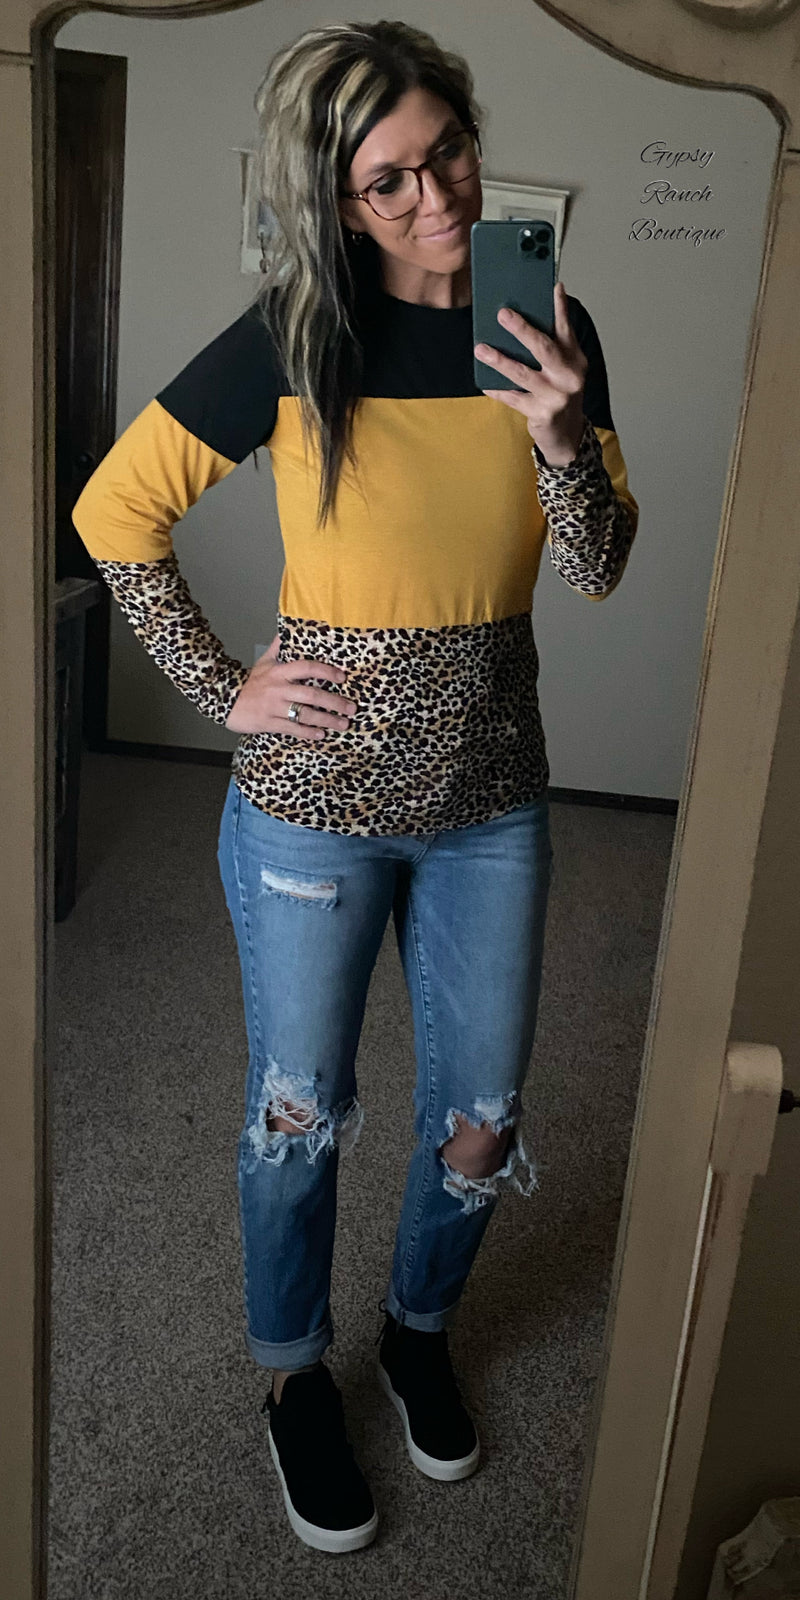 Kasidy Mustard Leopard Top - Also in Plus Size